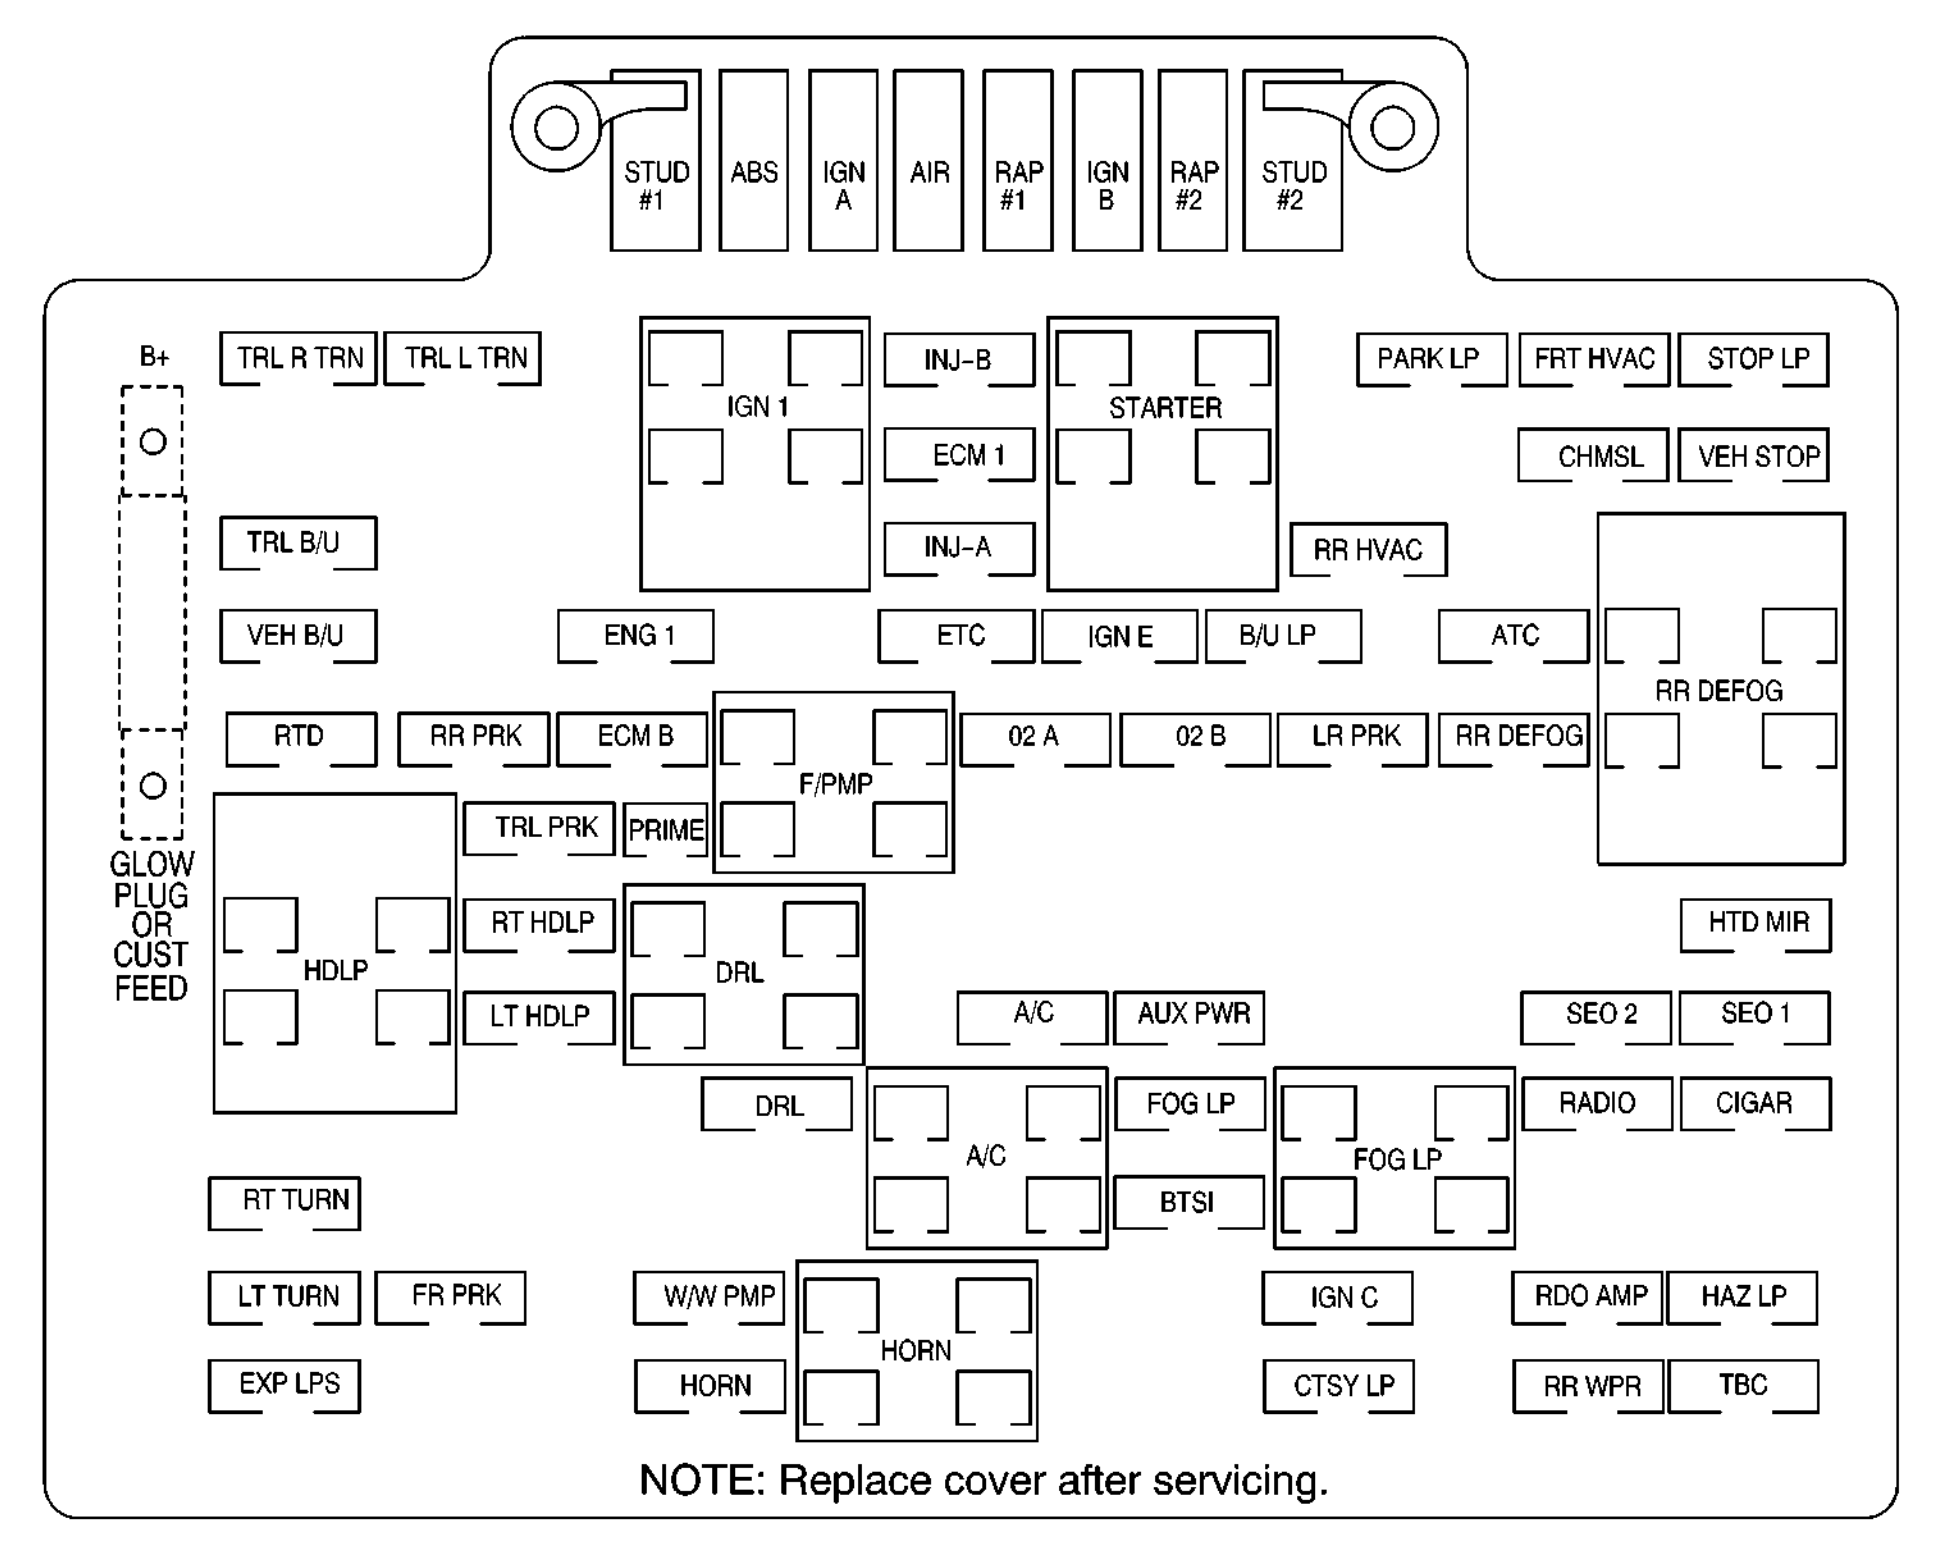 2015 suburban fuse box diagram